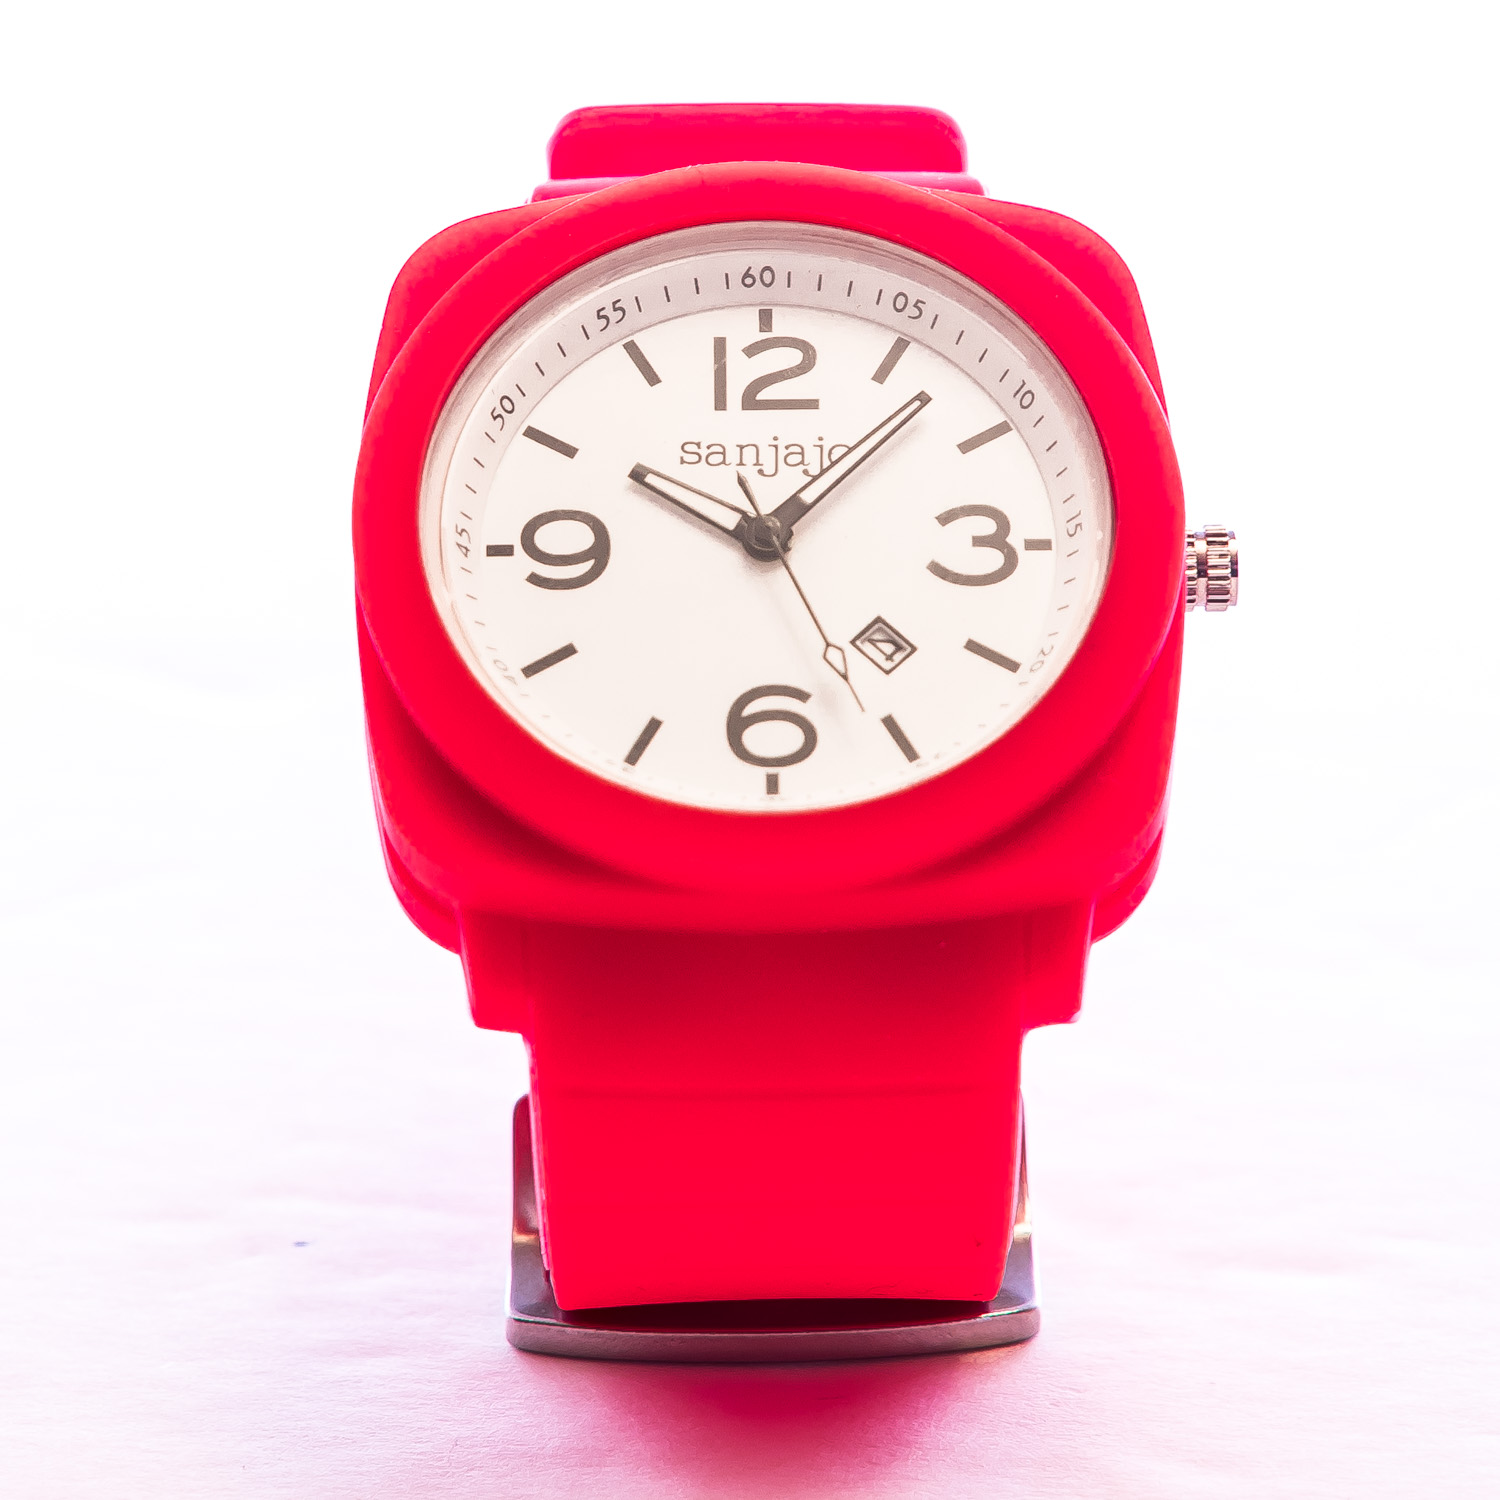 Sanjajo Peruvian Red-White Patriot Watch